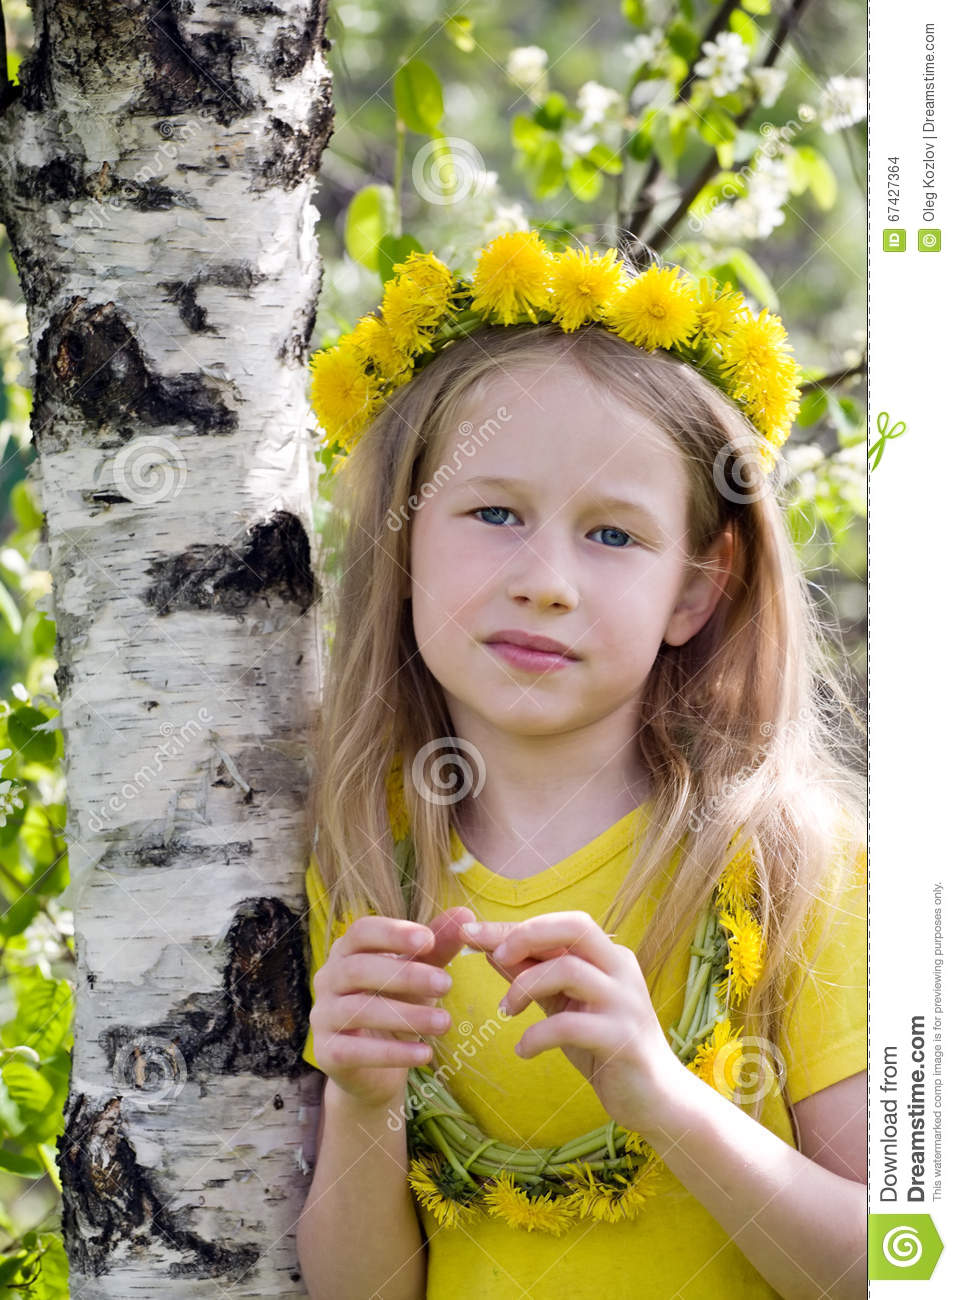 Girl in dandelion crown